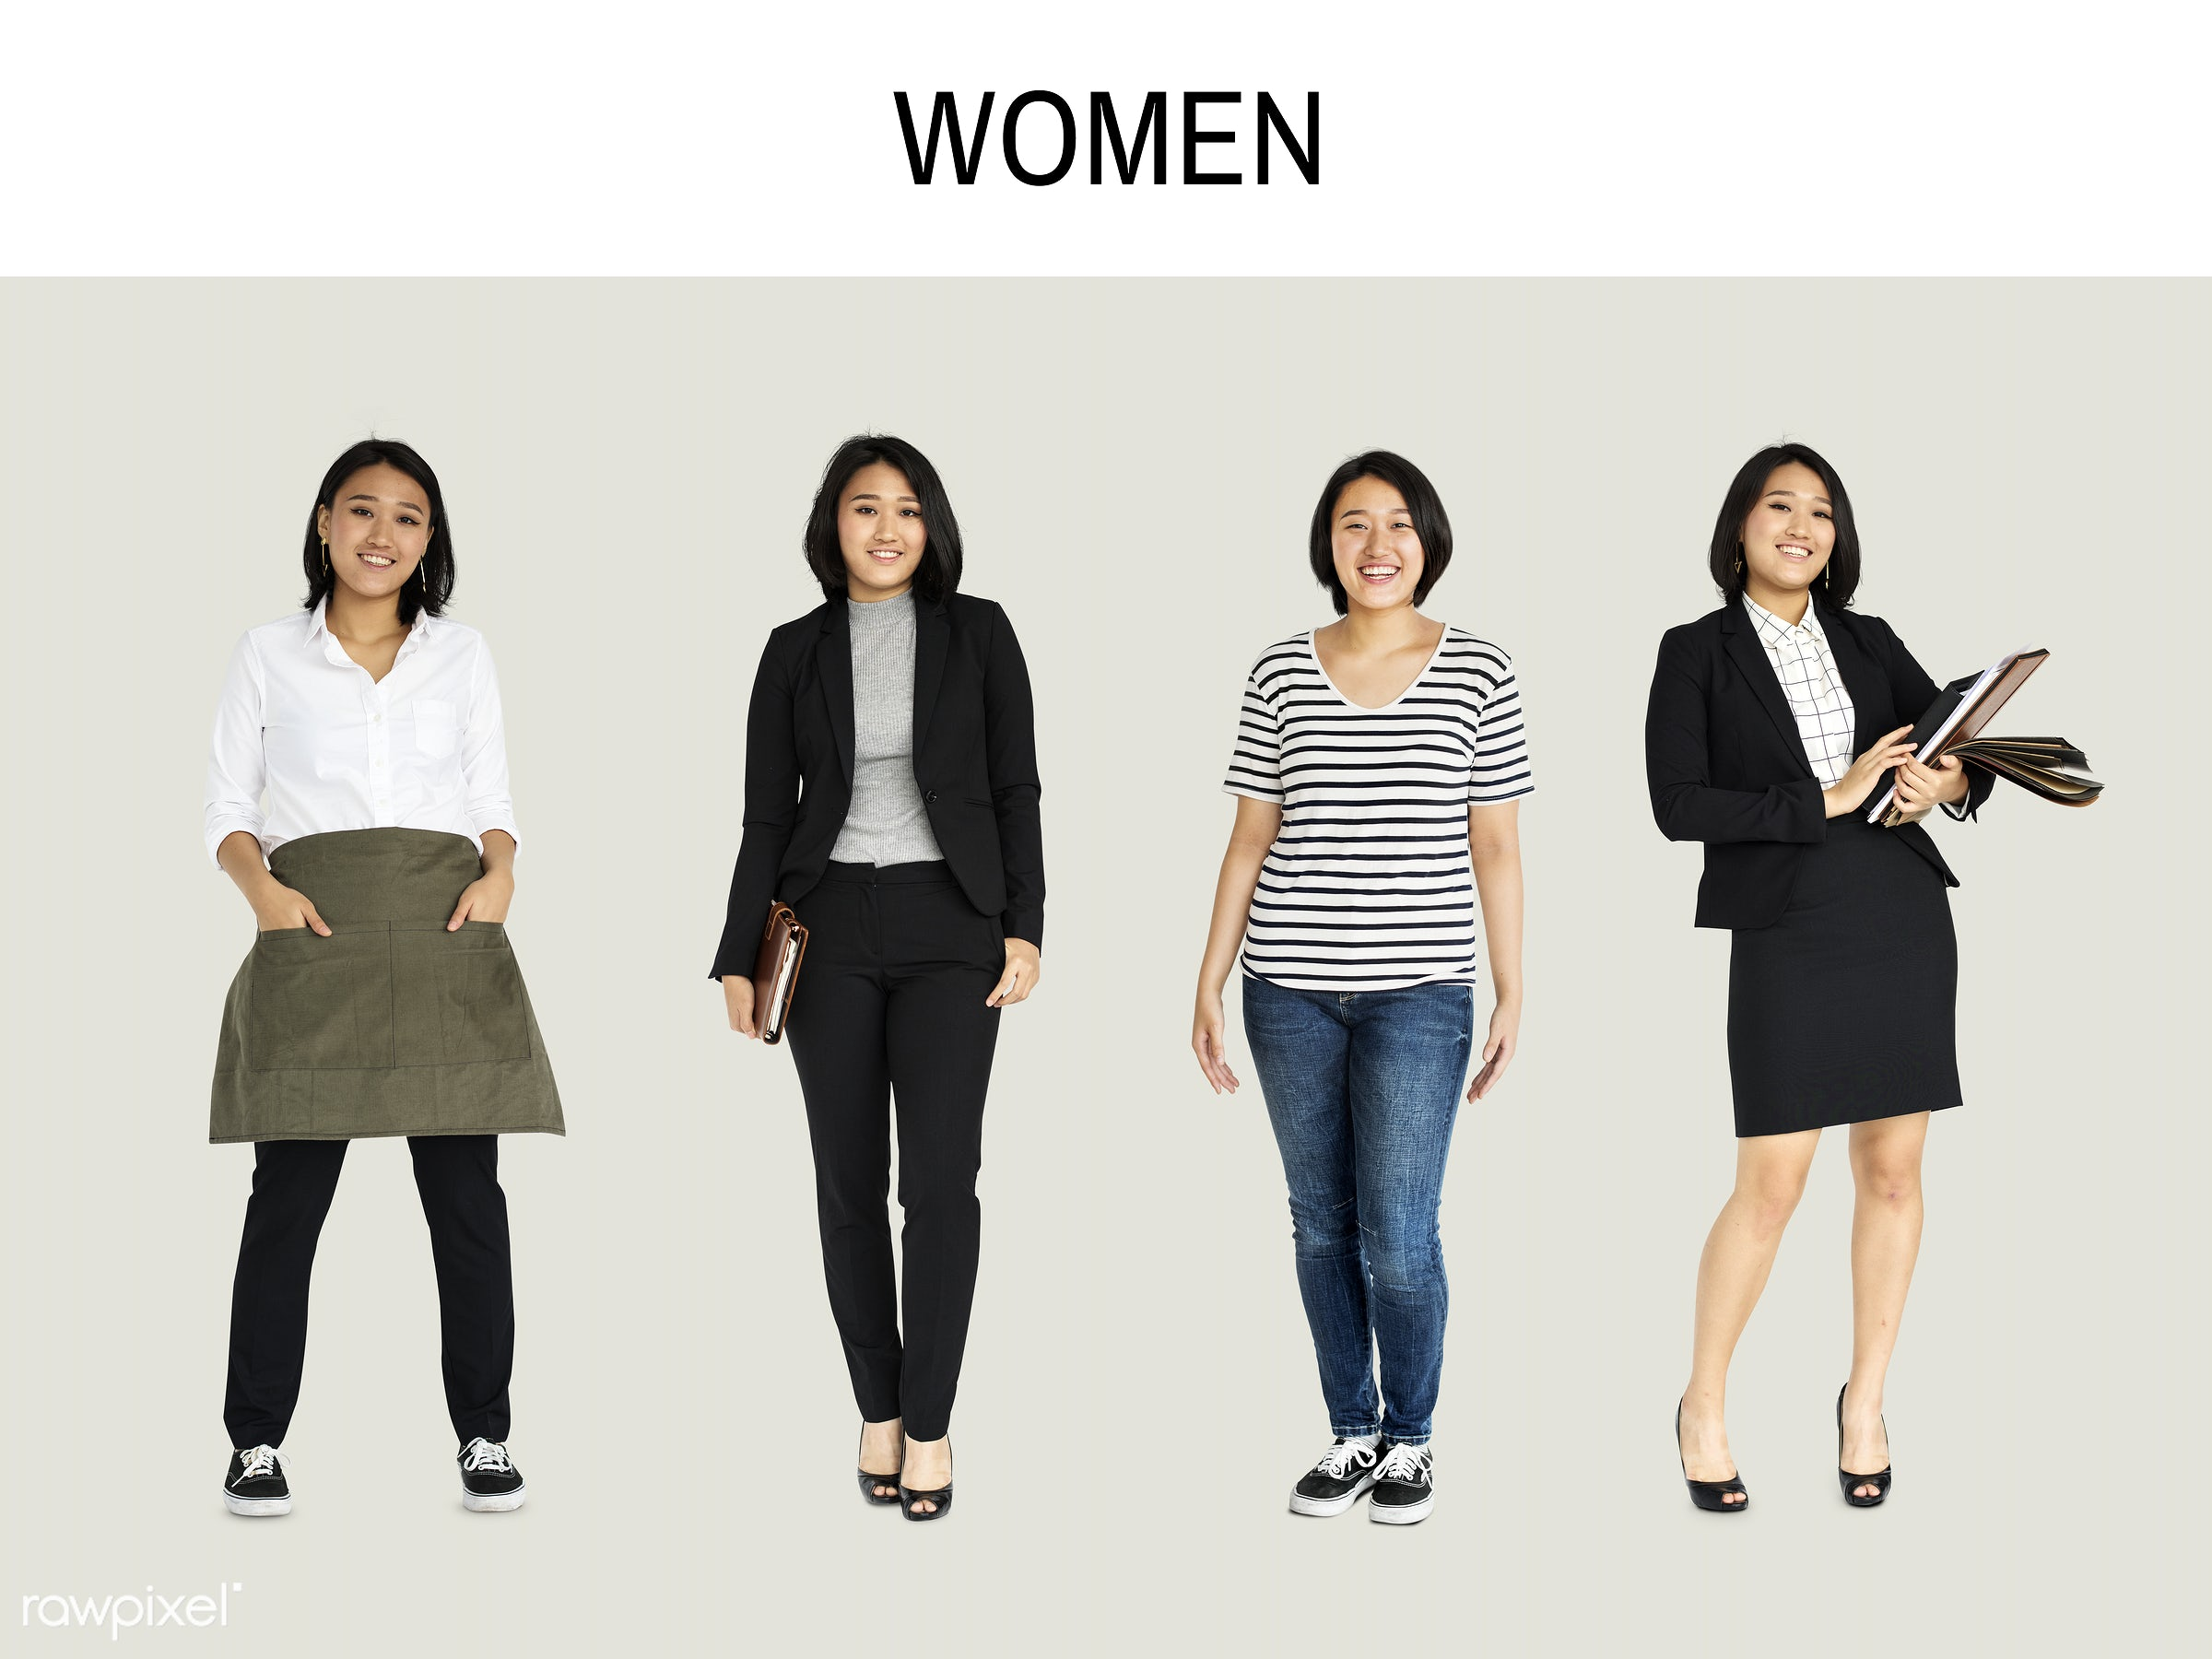 Diverse people set - studio, fashion, person, merchandise, diverse, set, isolated on white, collection, pretty, race, people...